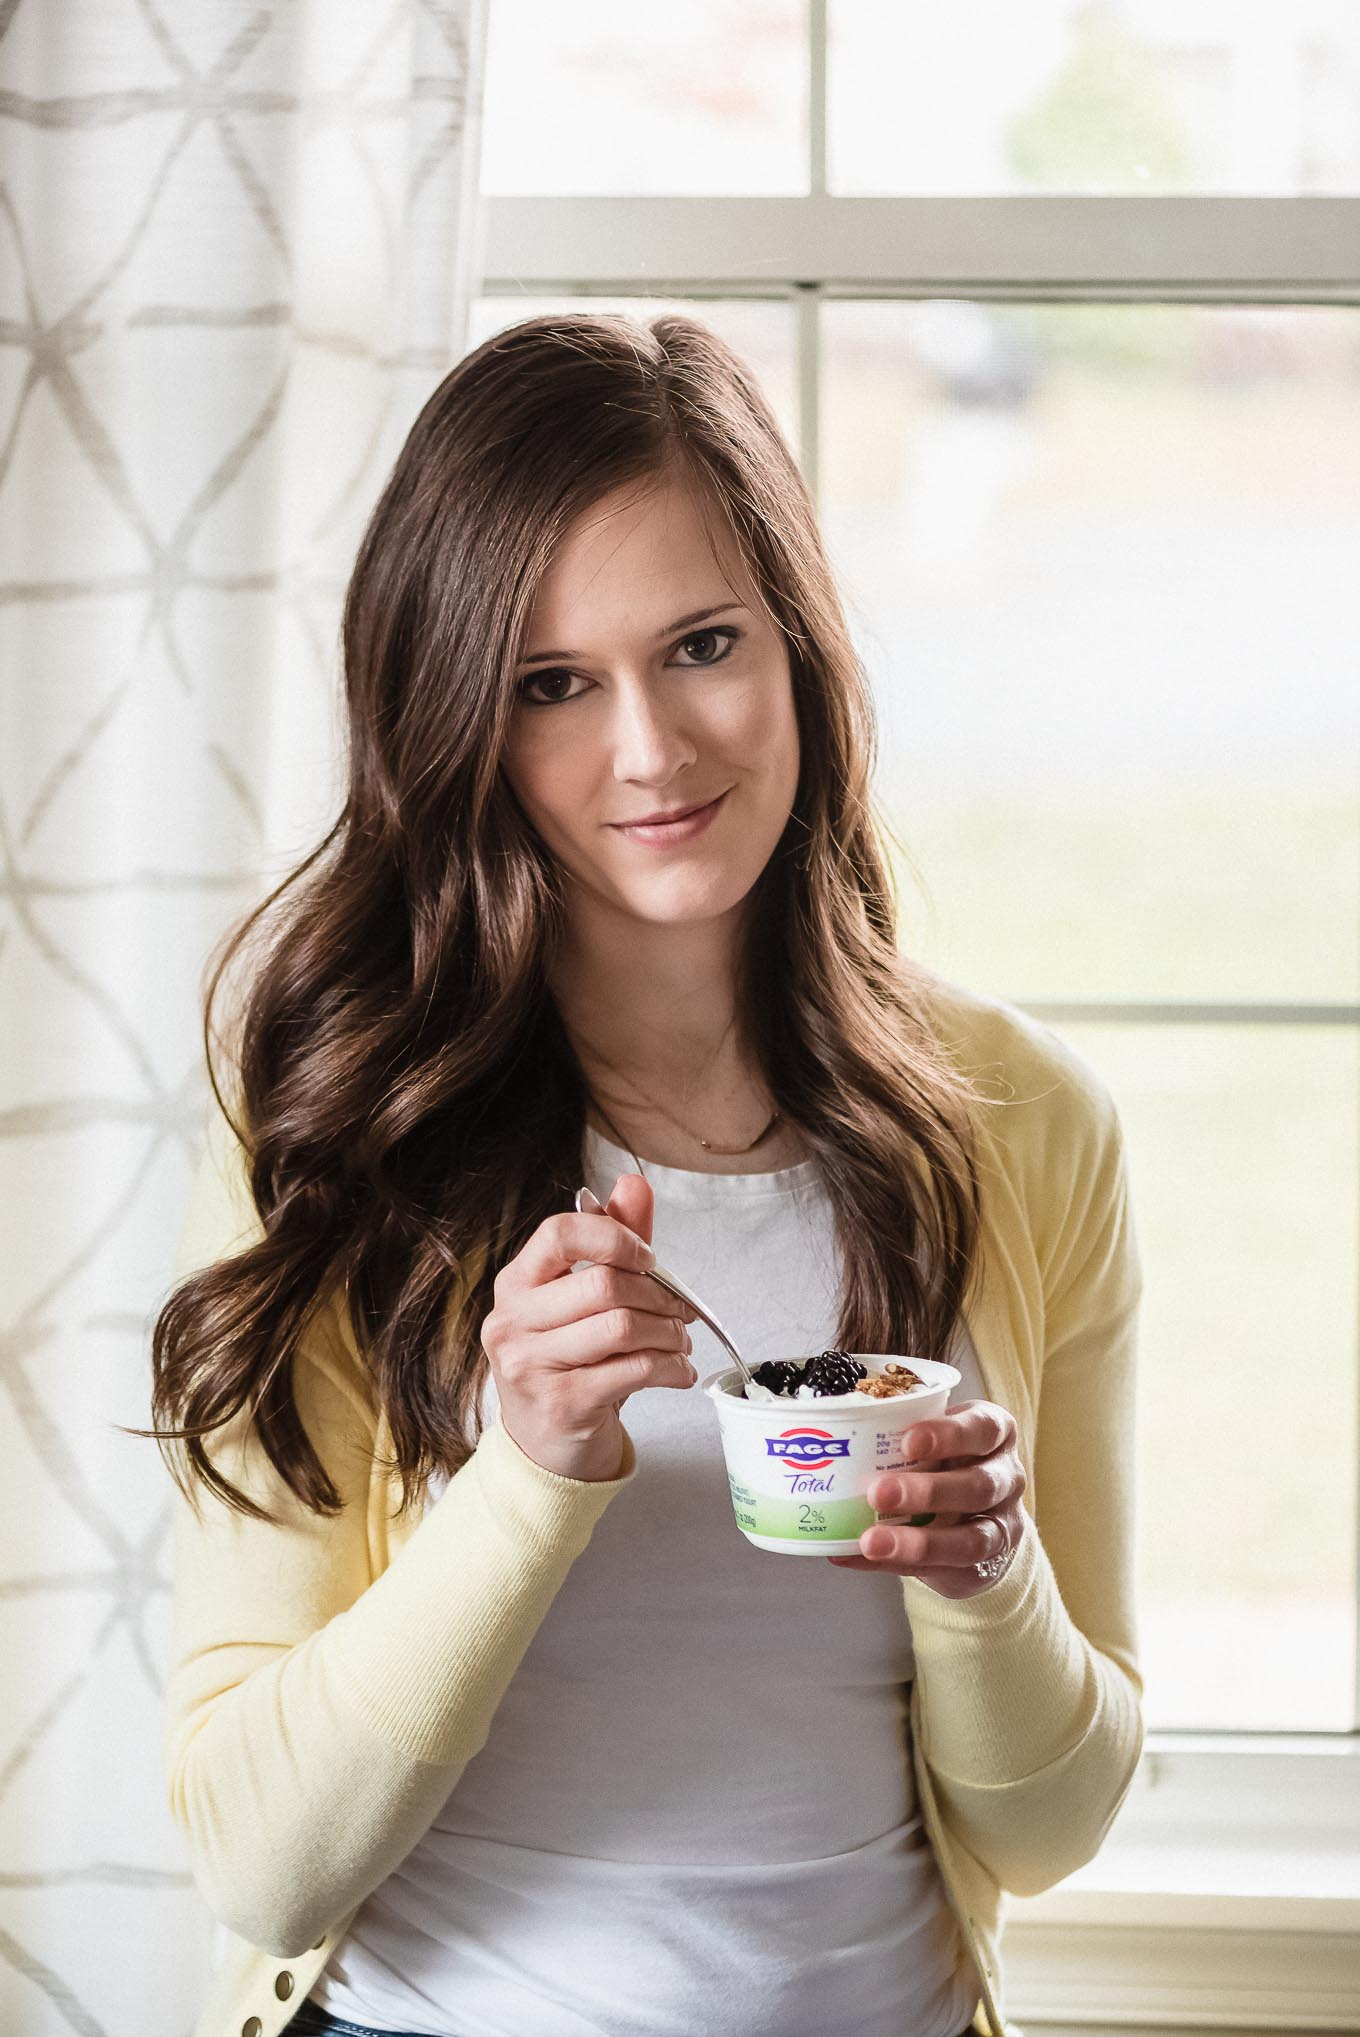 A woman enjoying a container of FAGE Greek yogurt topped with blackberries and granola.